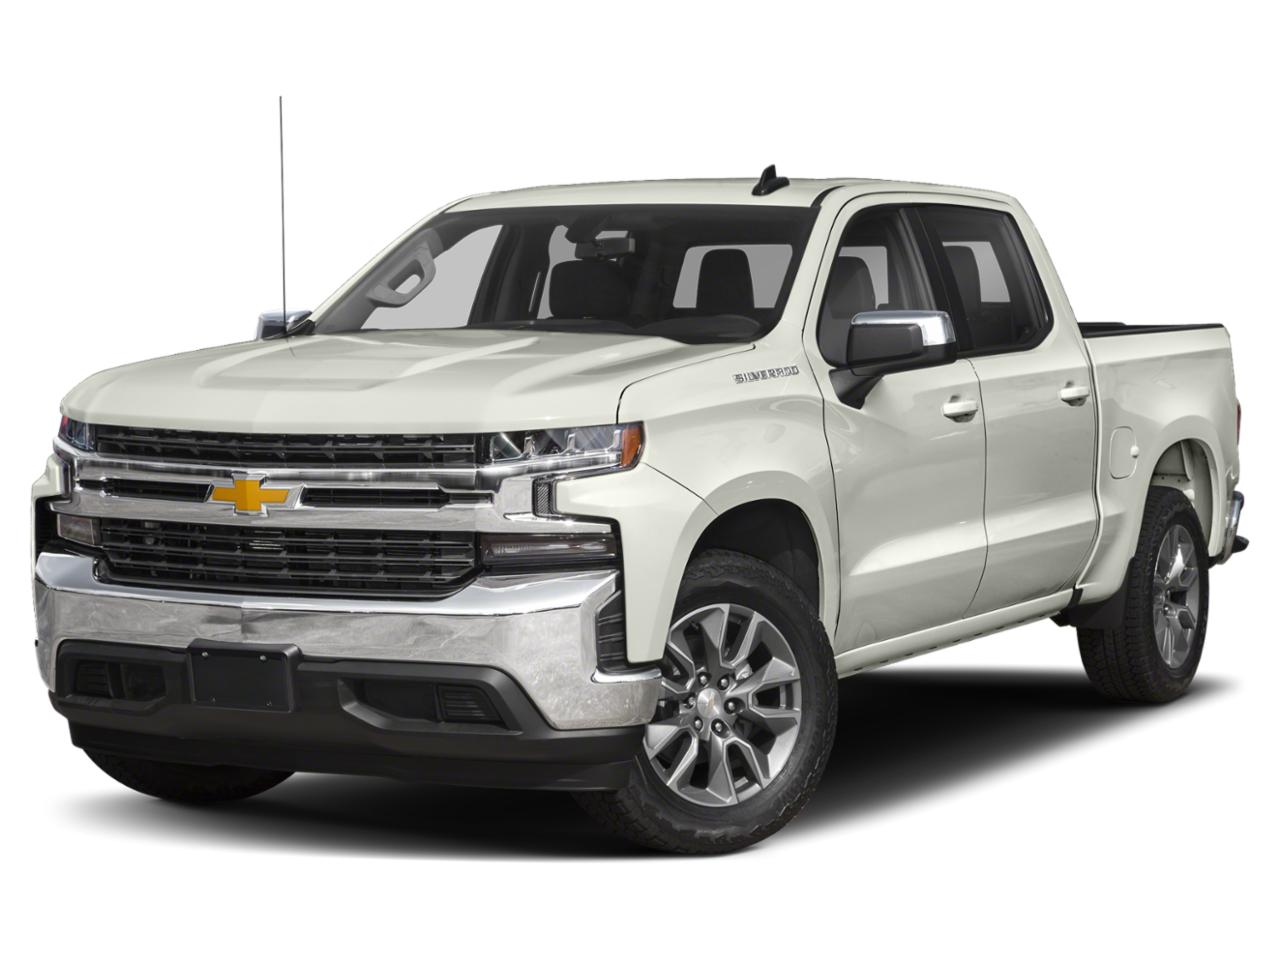 Pearl 2019 Chevrolet Silverado 1500 HIGH COUNTRY Crew Cab Pickup Wake Forest NC